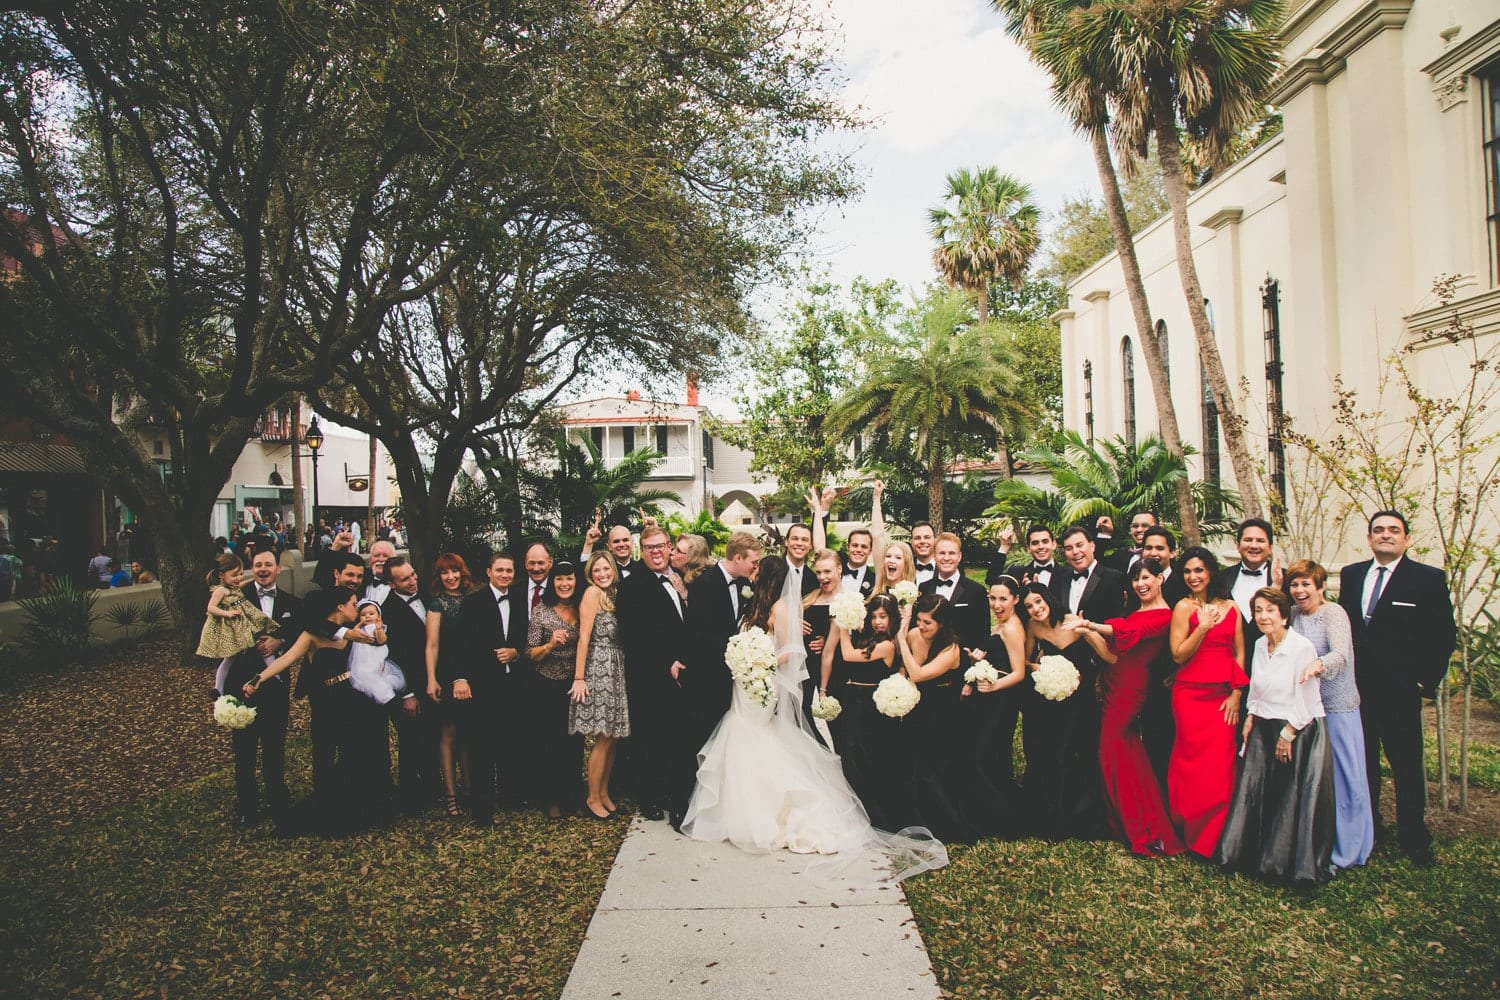 Wedding Guests | Modern St. Augustine Wedding at The Treasury on The Plaza